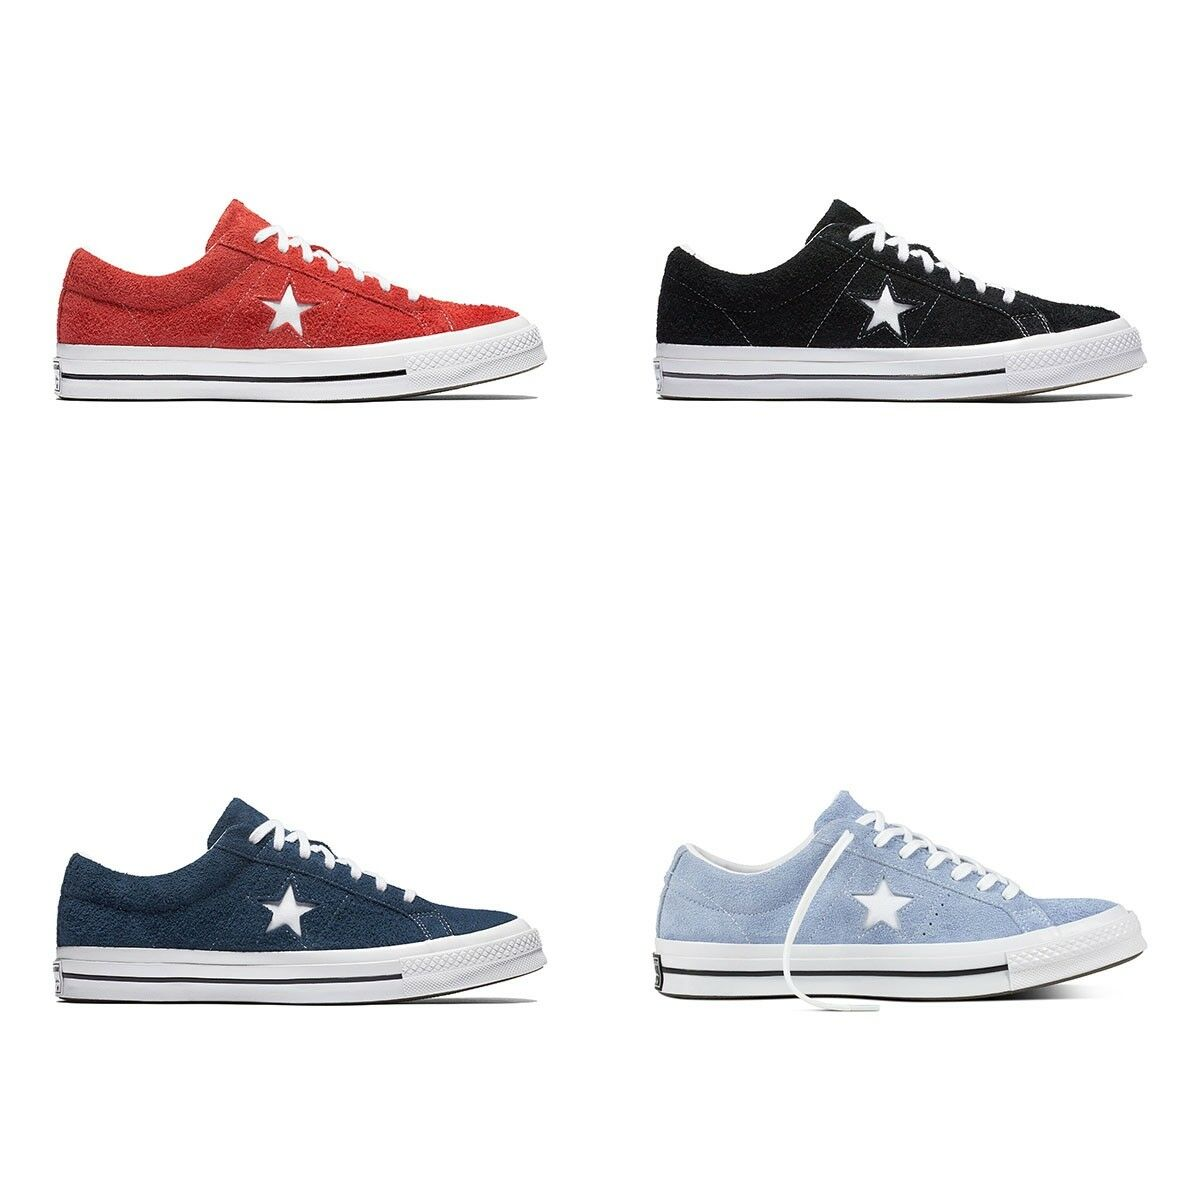 New Original Converse One Star OX  Suede Uomo Shoes All Sizes Colors NIB